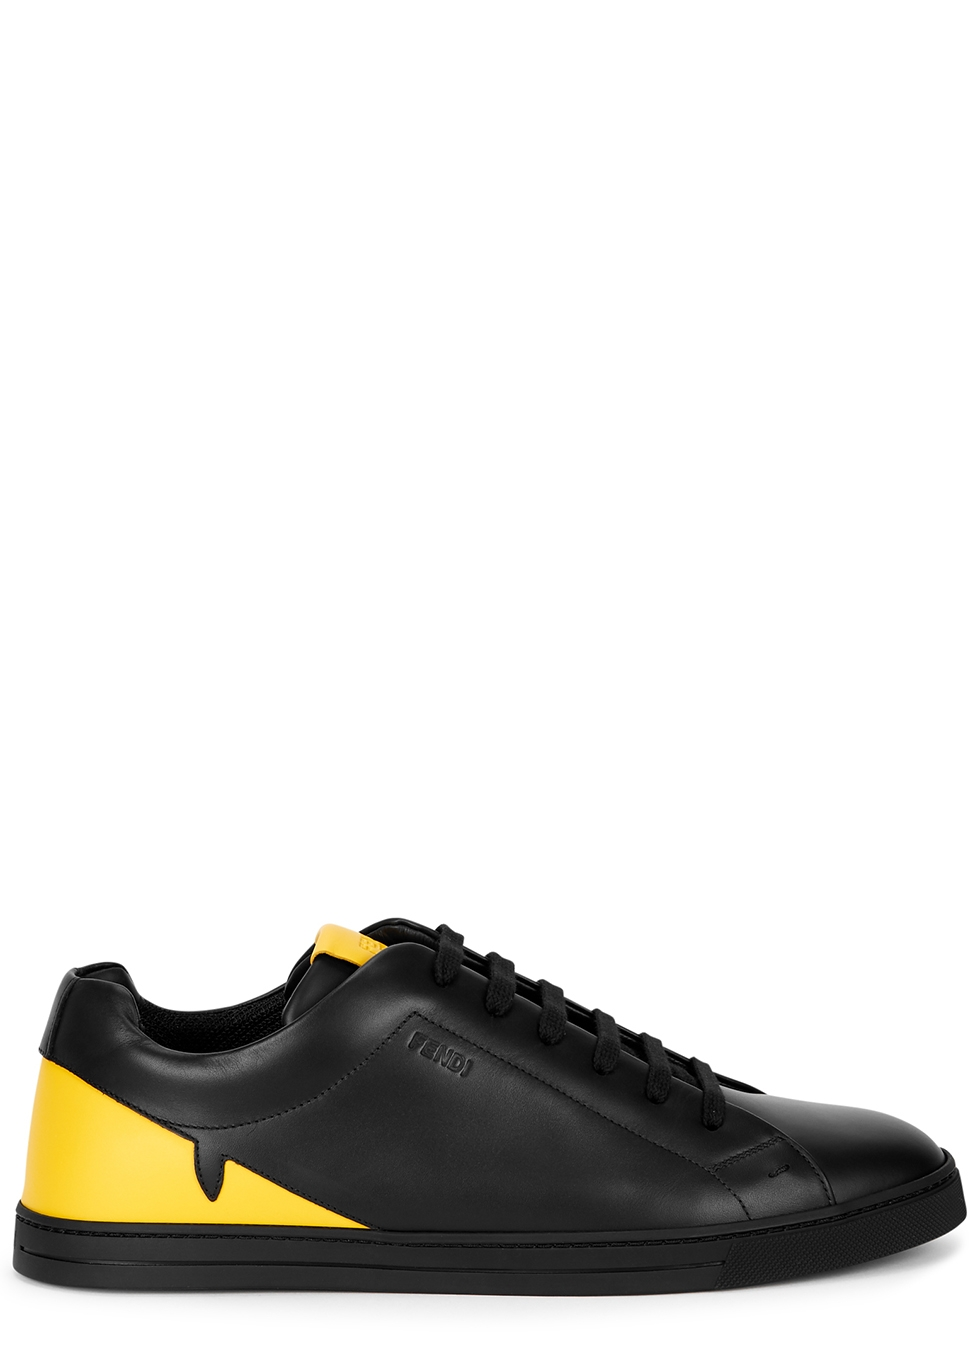 Fendi Black and yellow leather sneakers